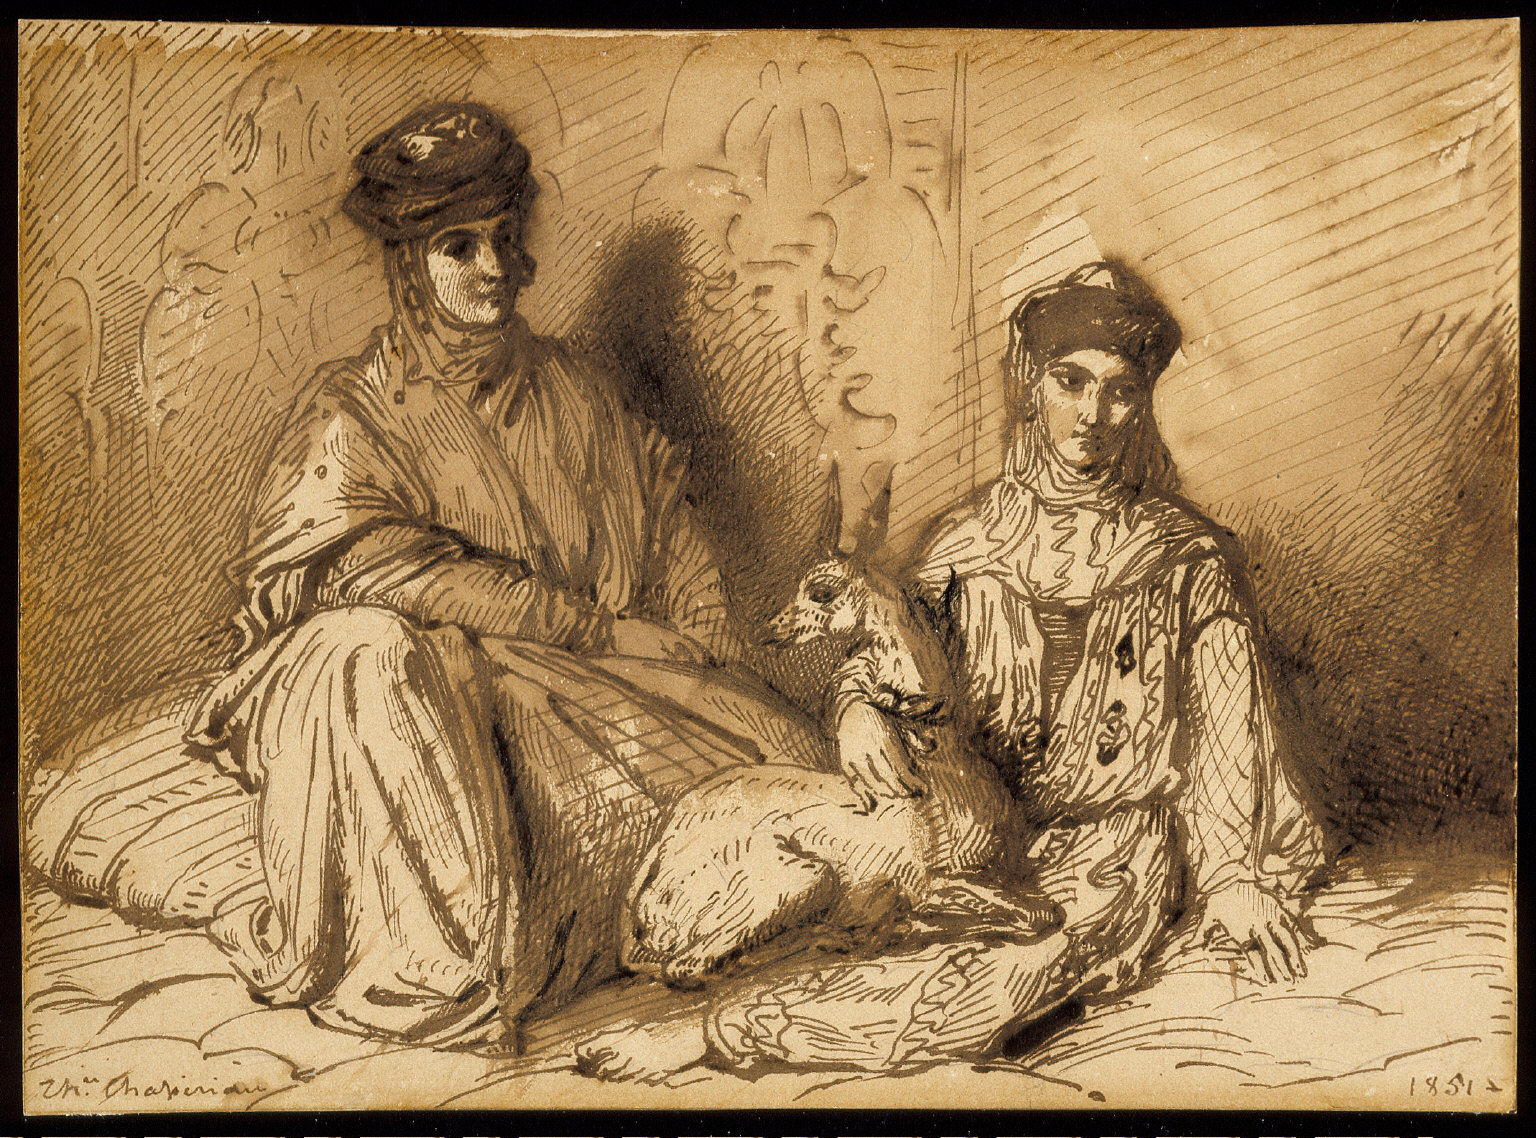 Arab Woman and Girl with a Gazelle